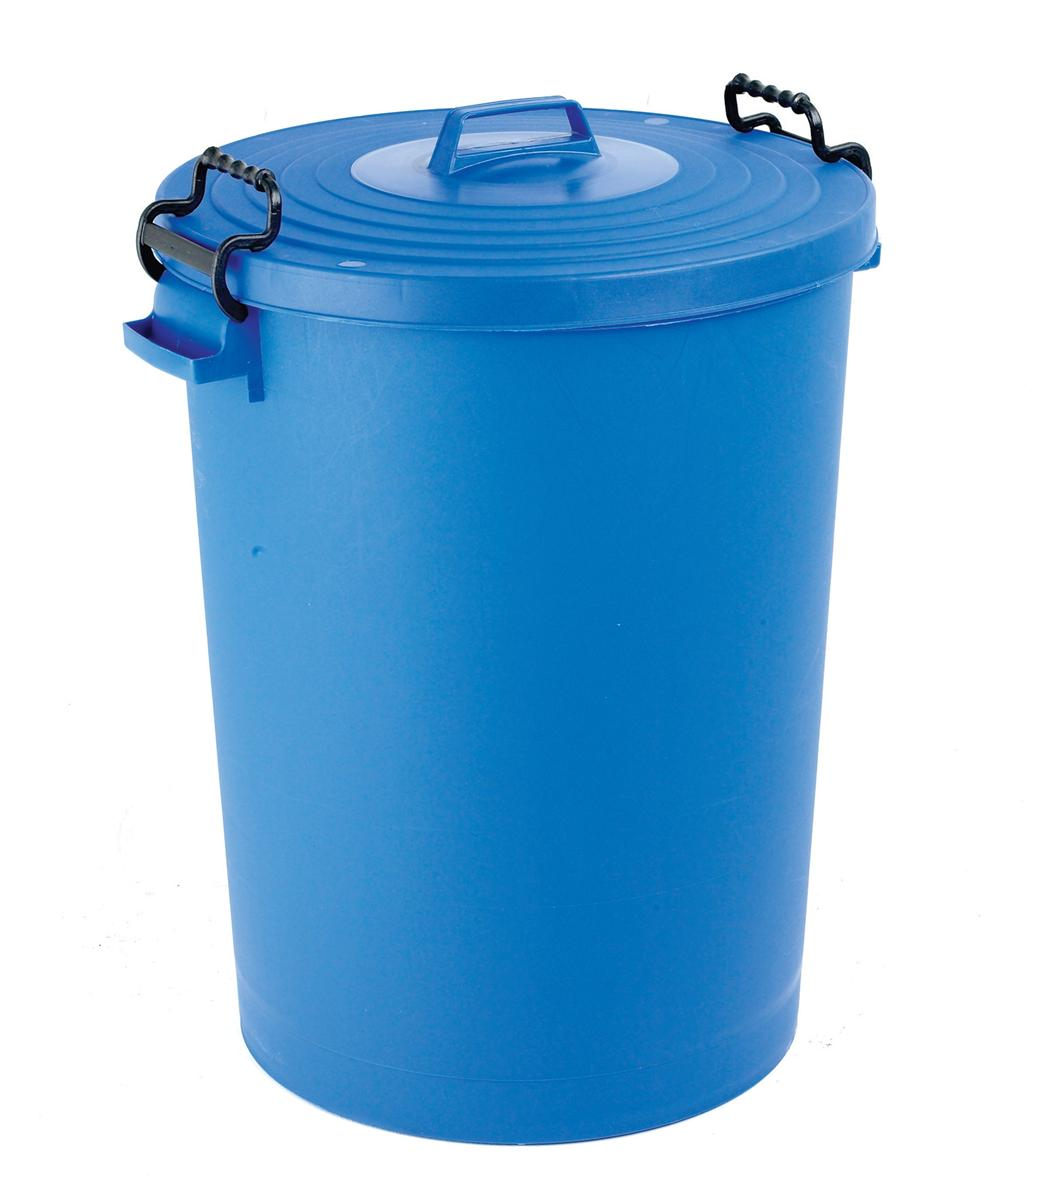 Image for Dustbin with Blue Lid 110 Litres